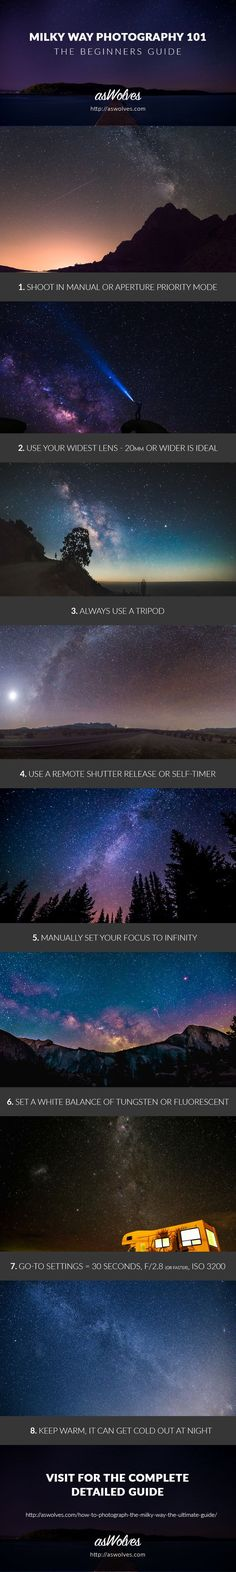 Photography Tips | Take Better Photos Visit For The Complete Guide - how to photograph the milky way